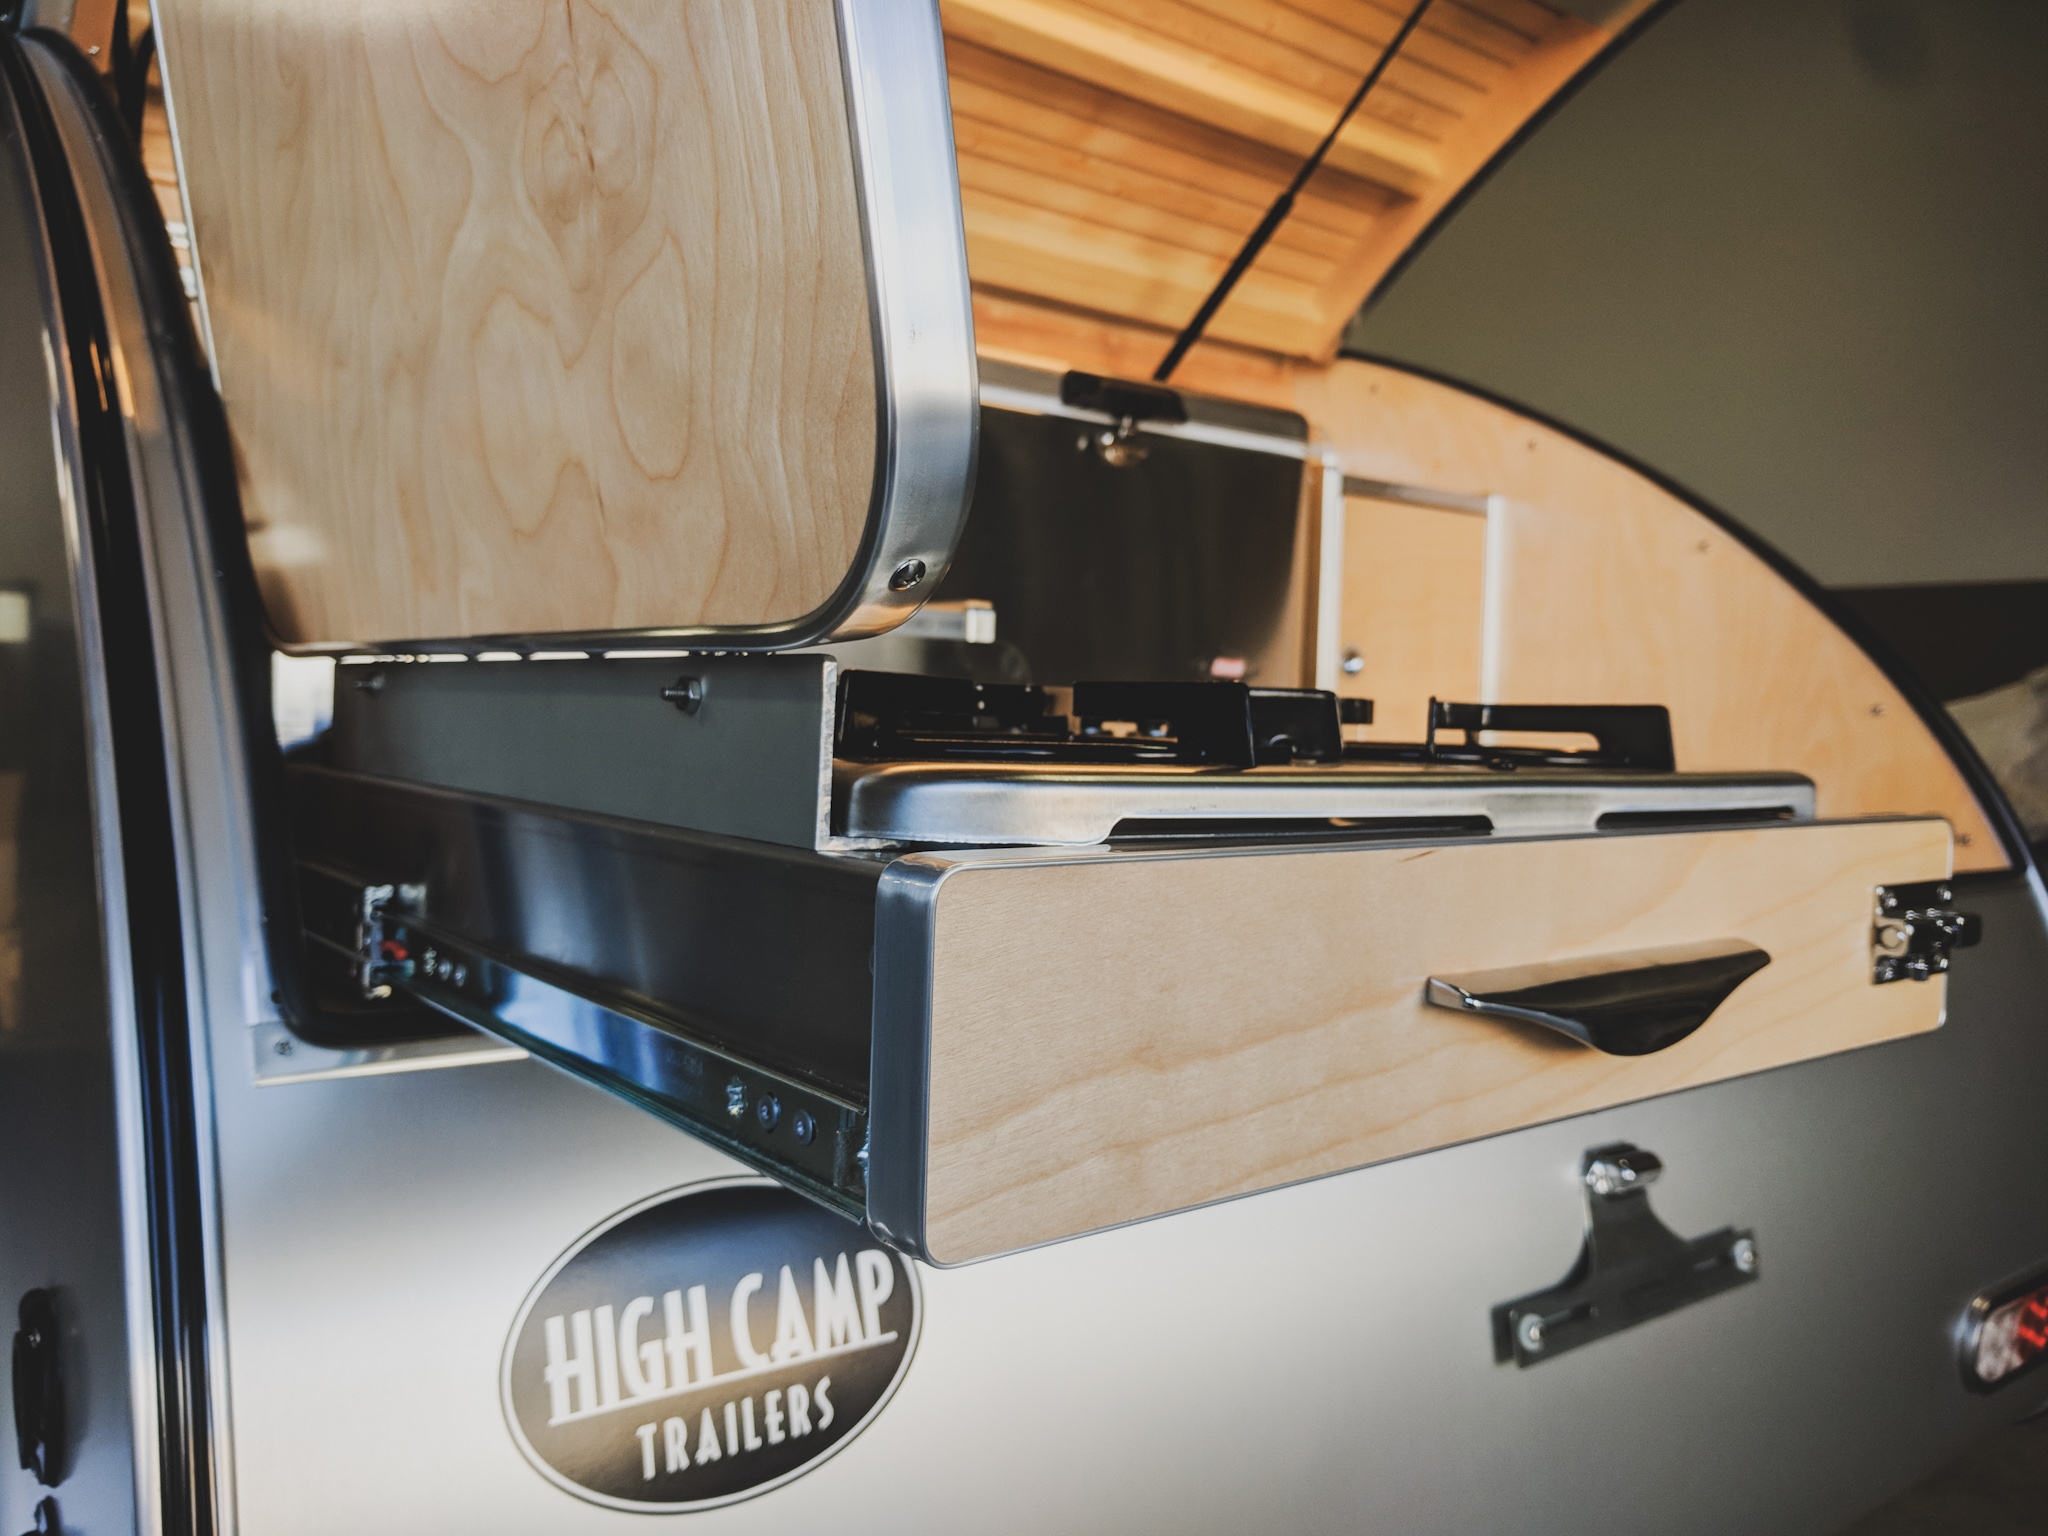 Trailer Galley Images High Camp Trailers Compact Camping Teardrop